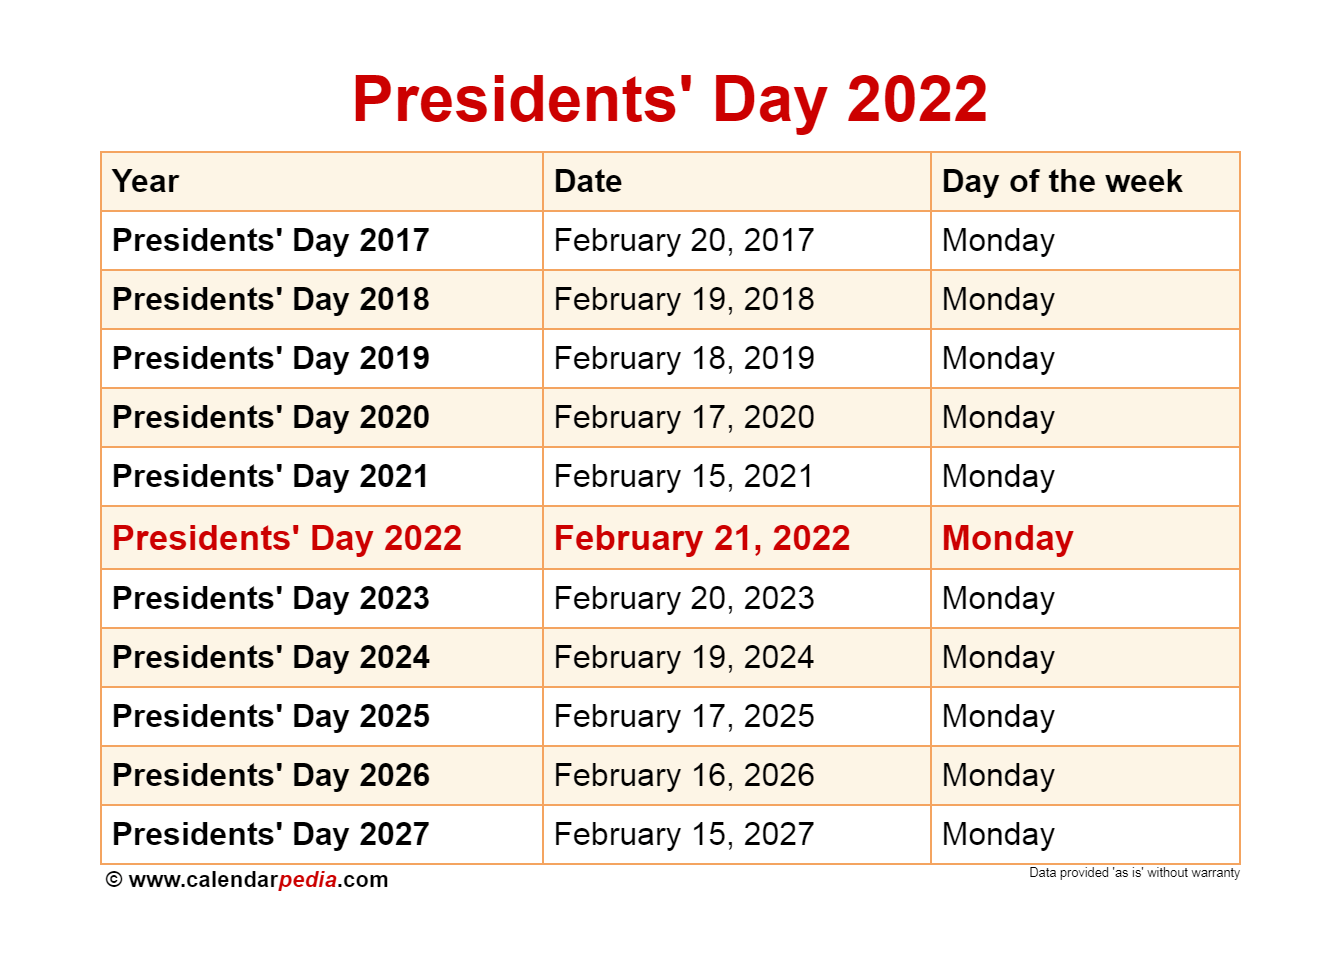 Presidents Day 2022 Calendar.When Is Presidents Day 2022